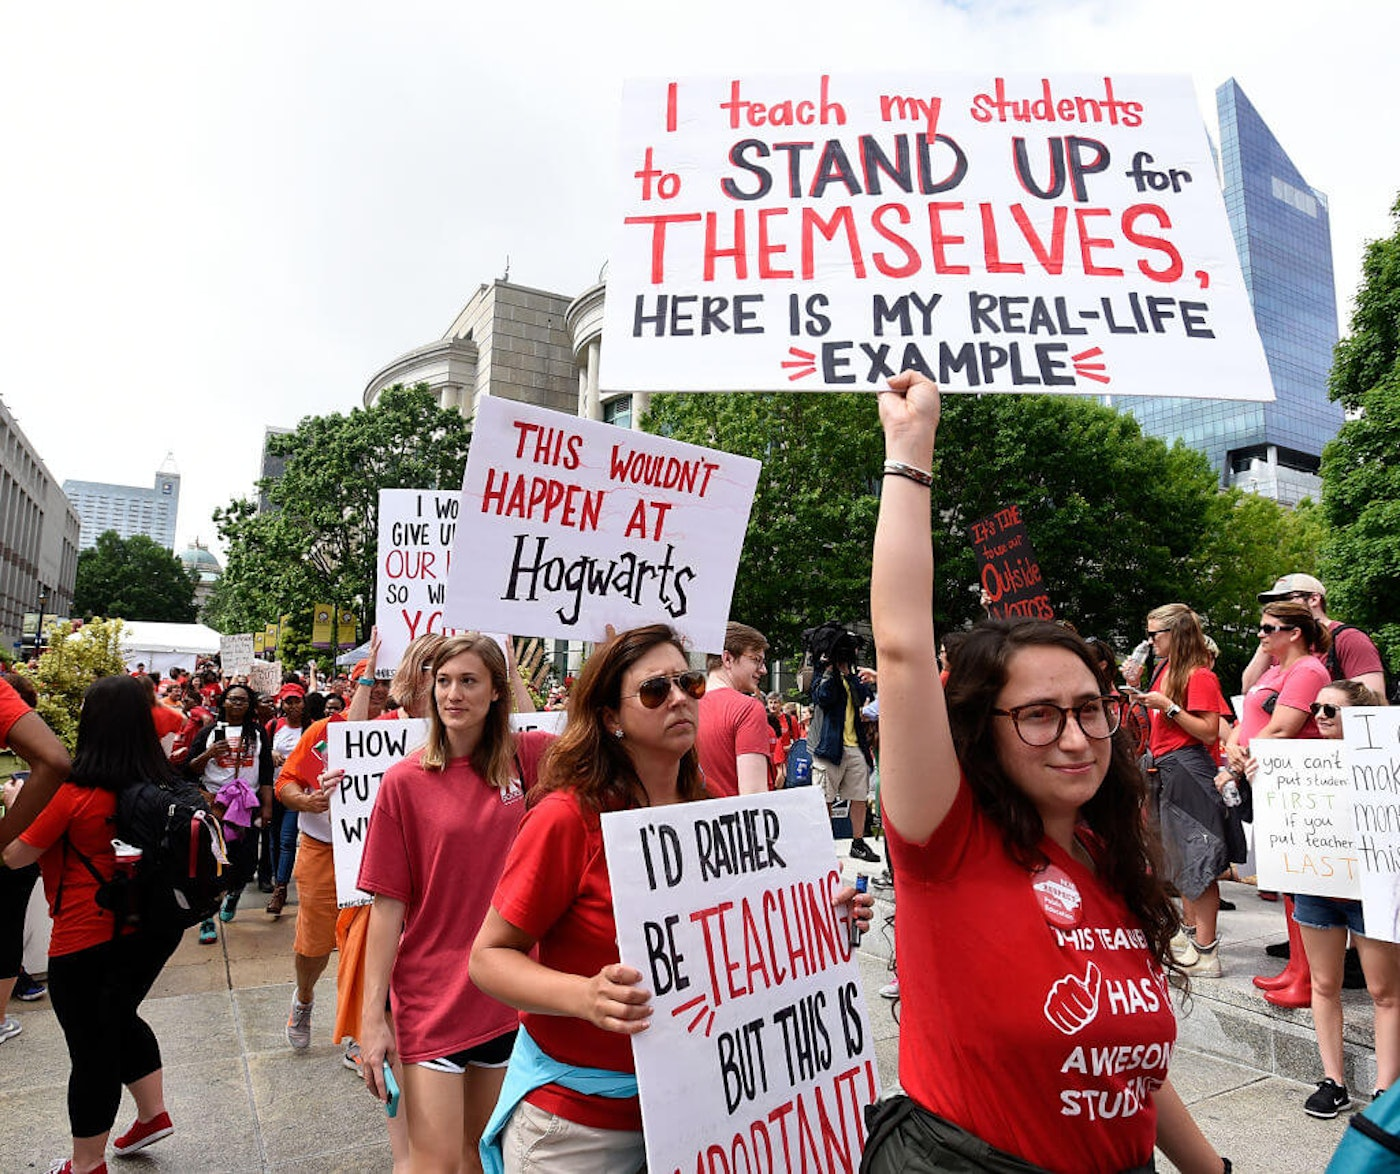 Crowds fill Bicentennial Plaza outside of the North Carolina Legislative Building during the March for Students and Rally for Respect on May 16, 2018 in Raleigh, North Carolina. (Photo by Sara D. Davis/Getty Images)